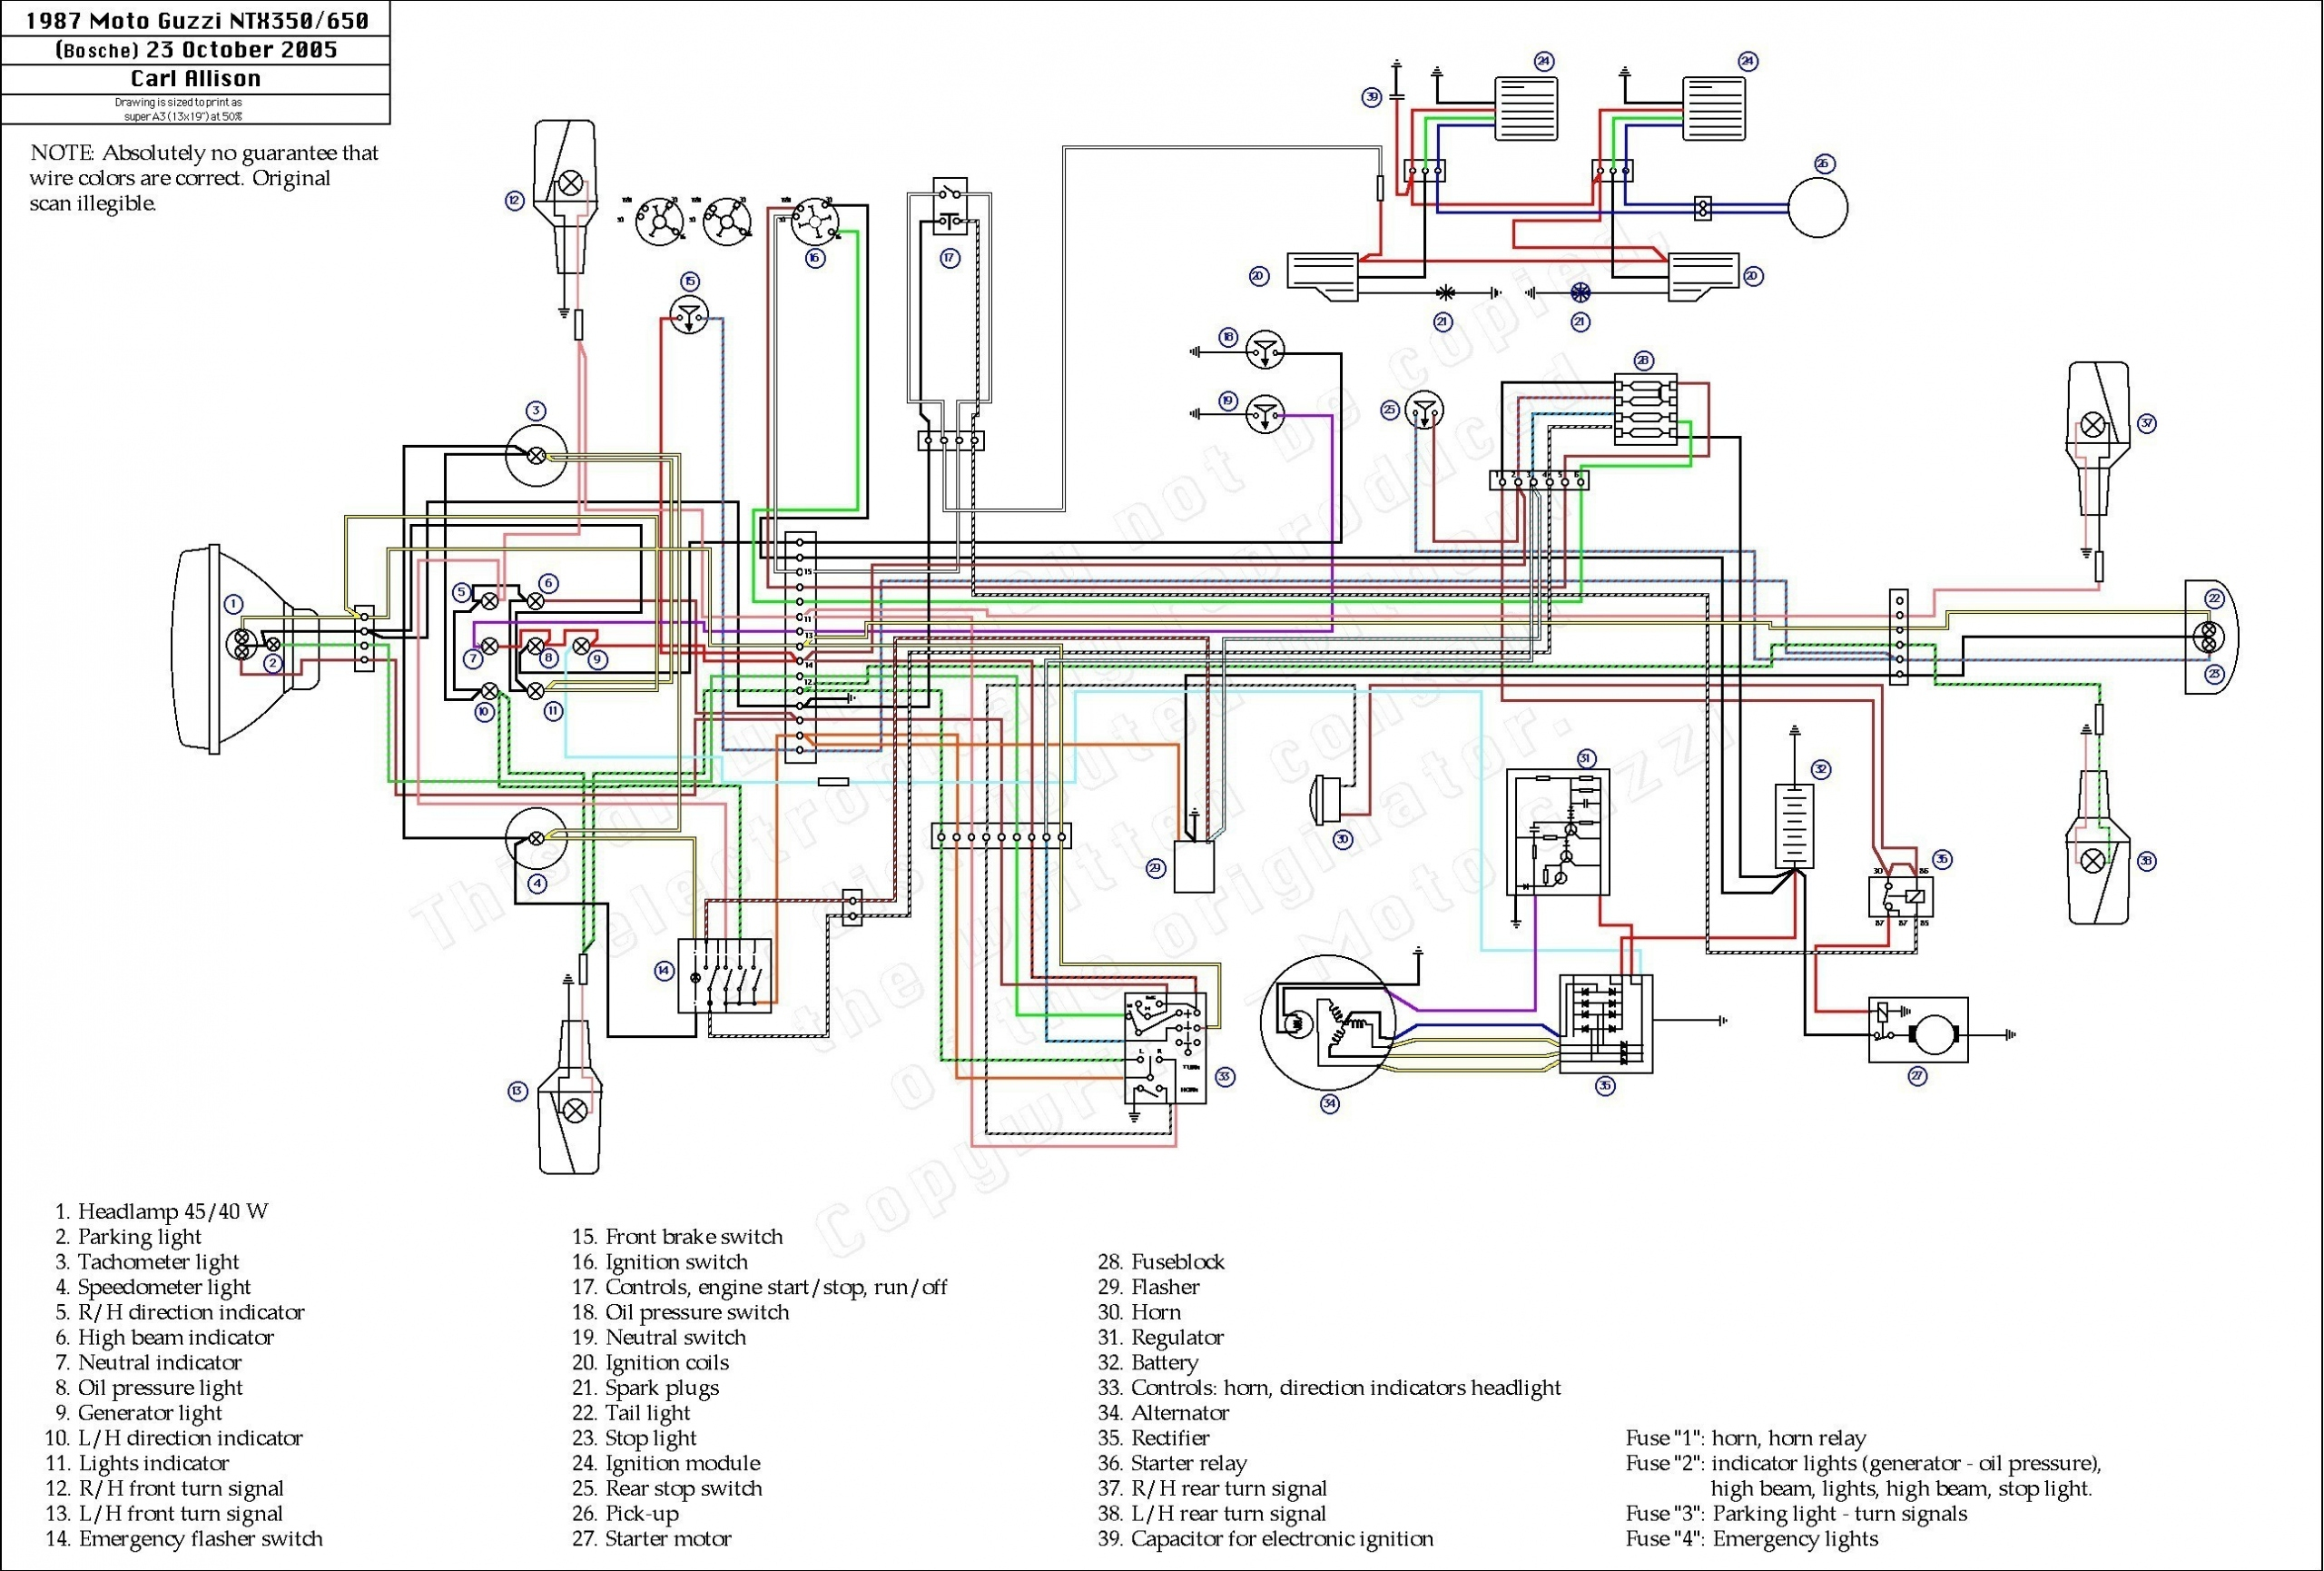 ads c2000 crossover wiring diagram | wiring library – taotao 125 atv wiring  diagram